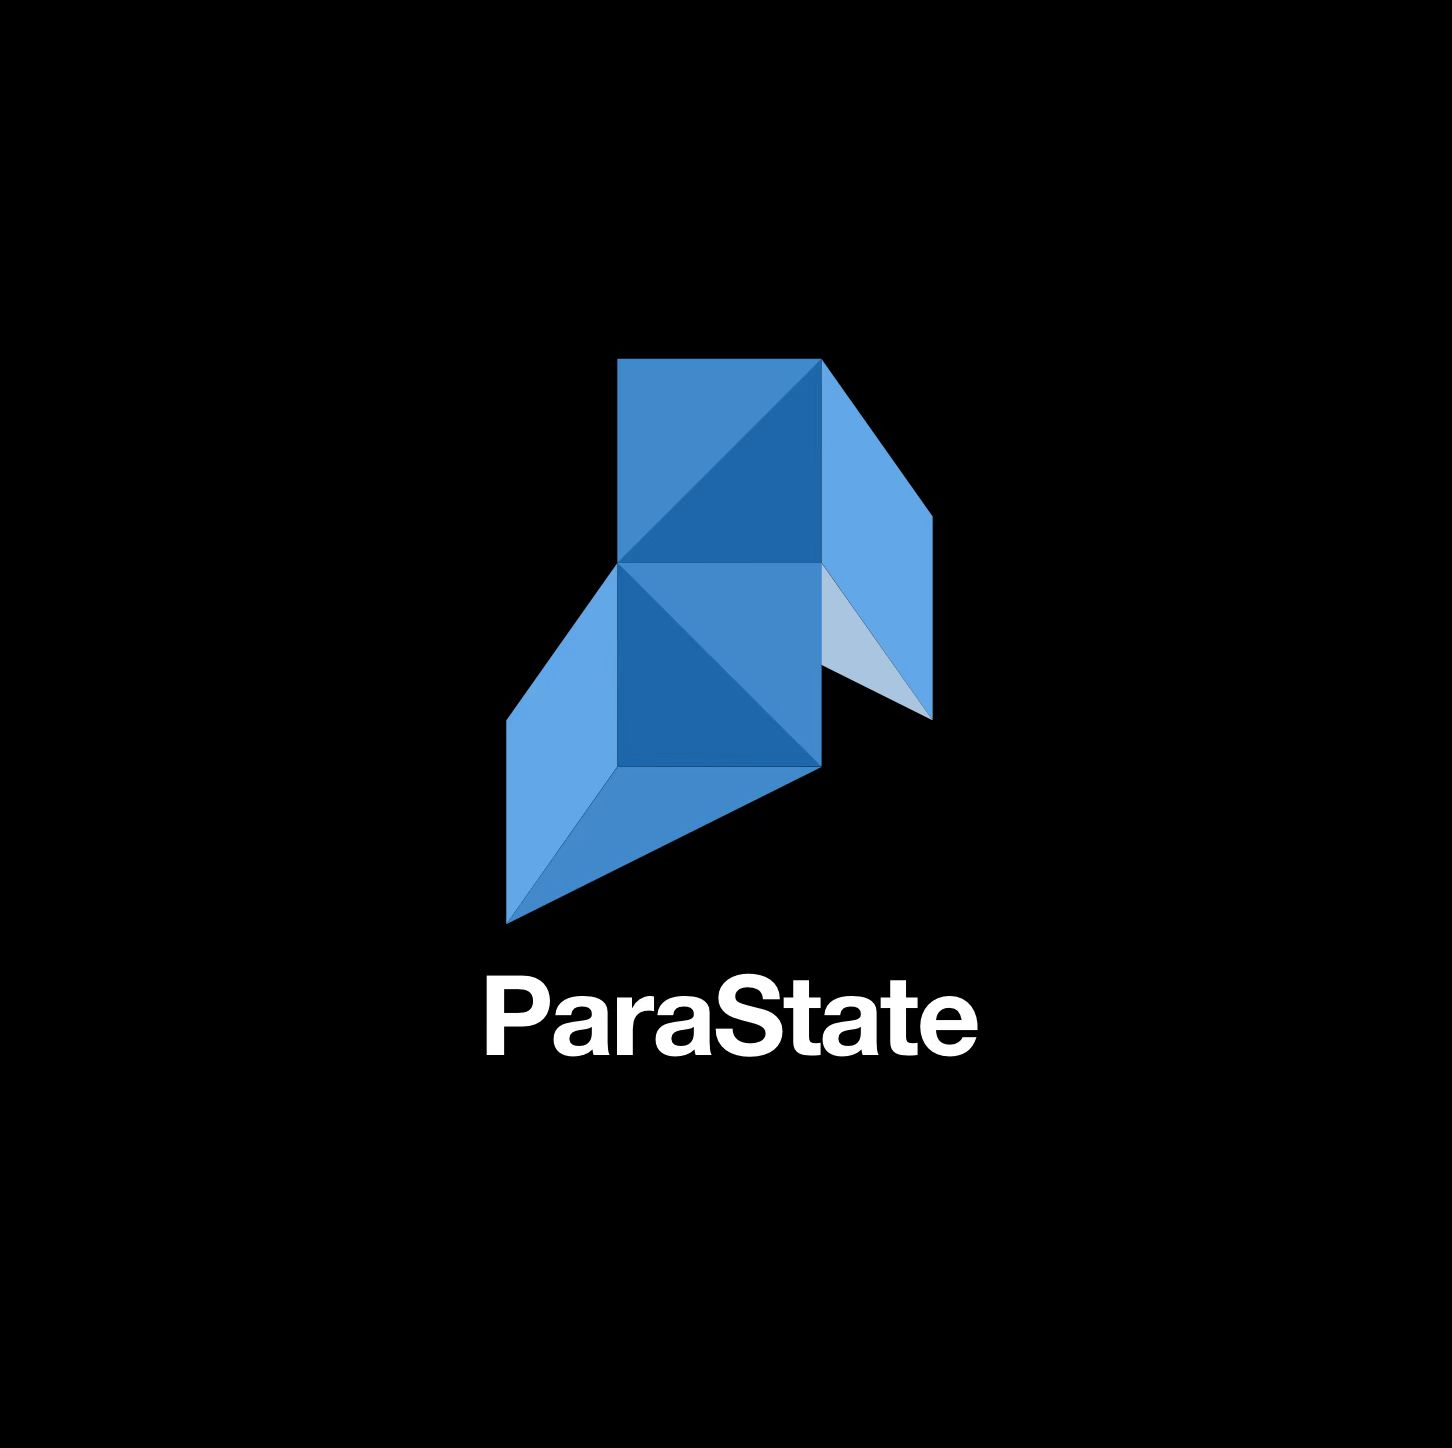 ParaState Foundation